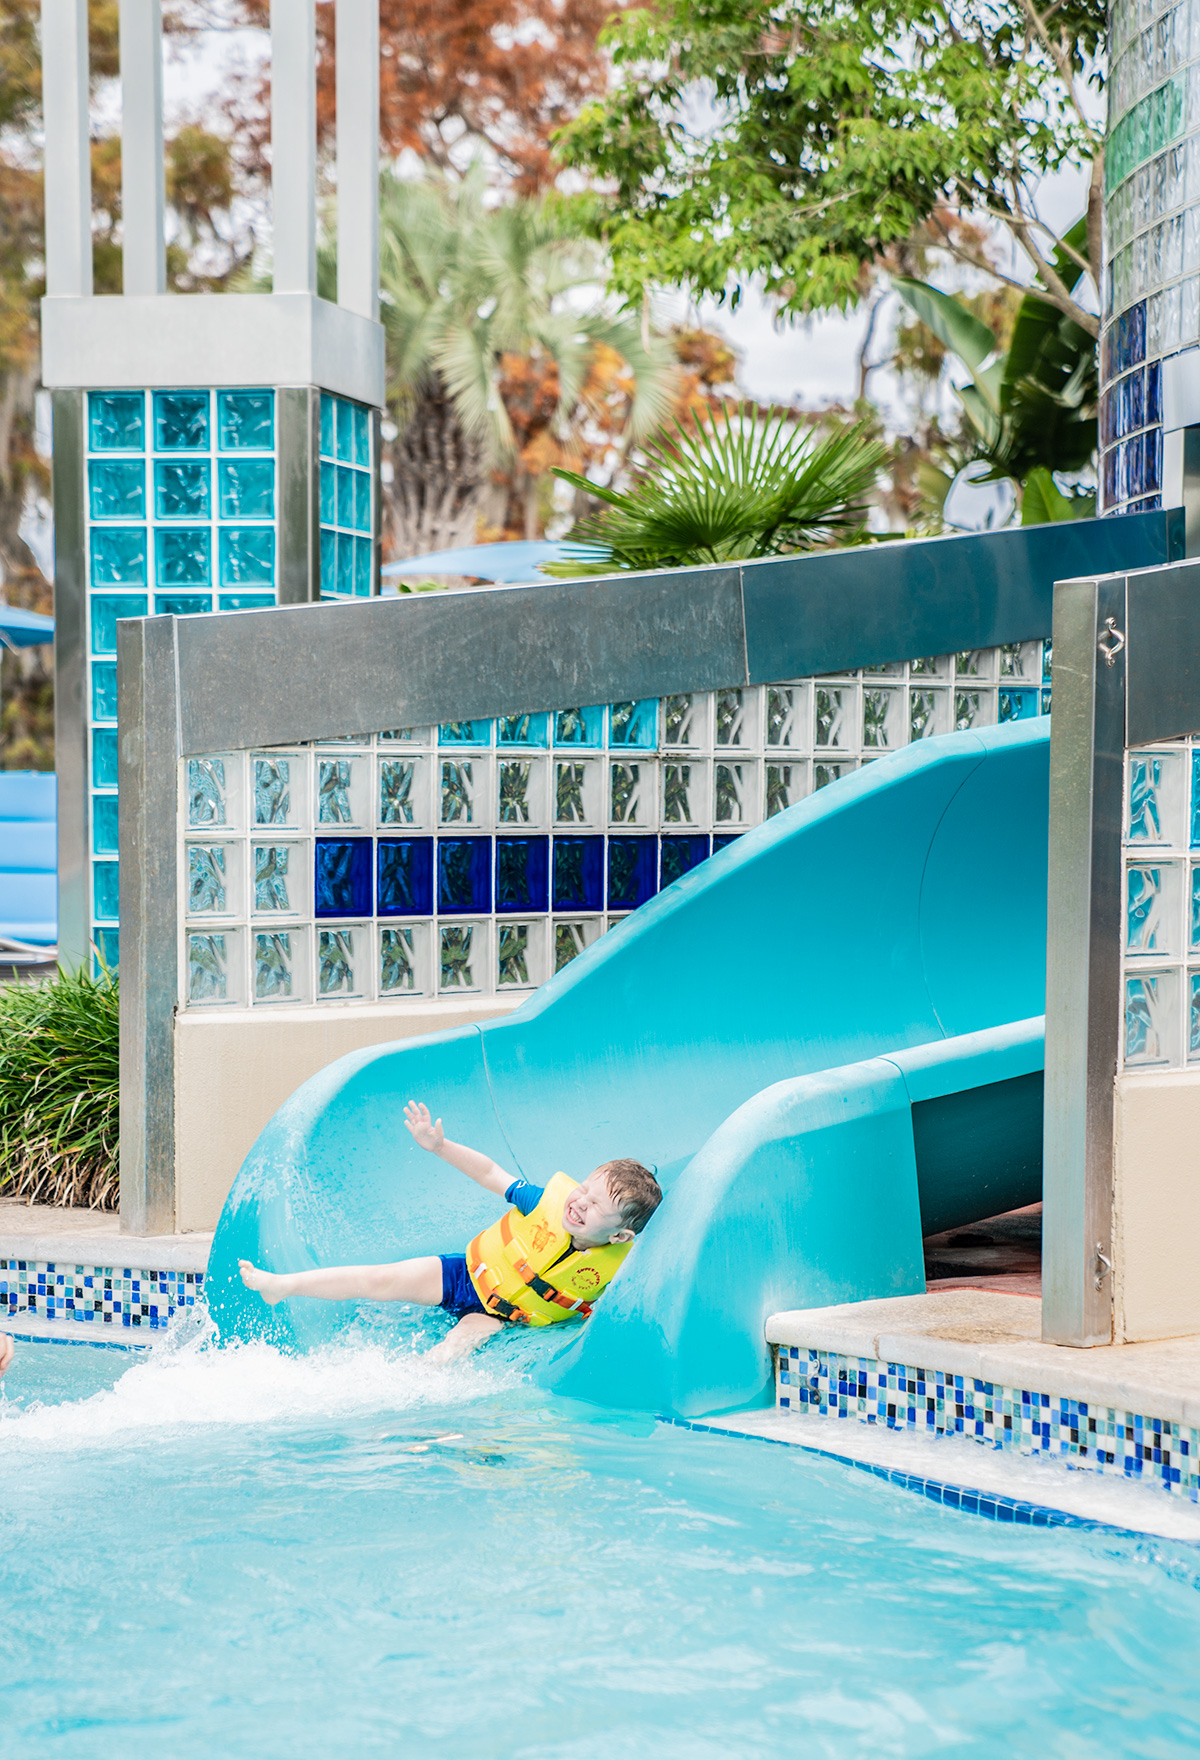 Water-Slide-at-Walt-Disney-Contemporary-Resort